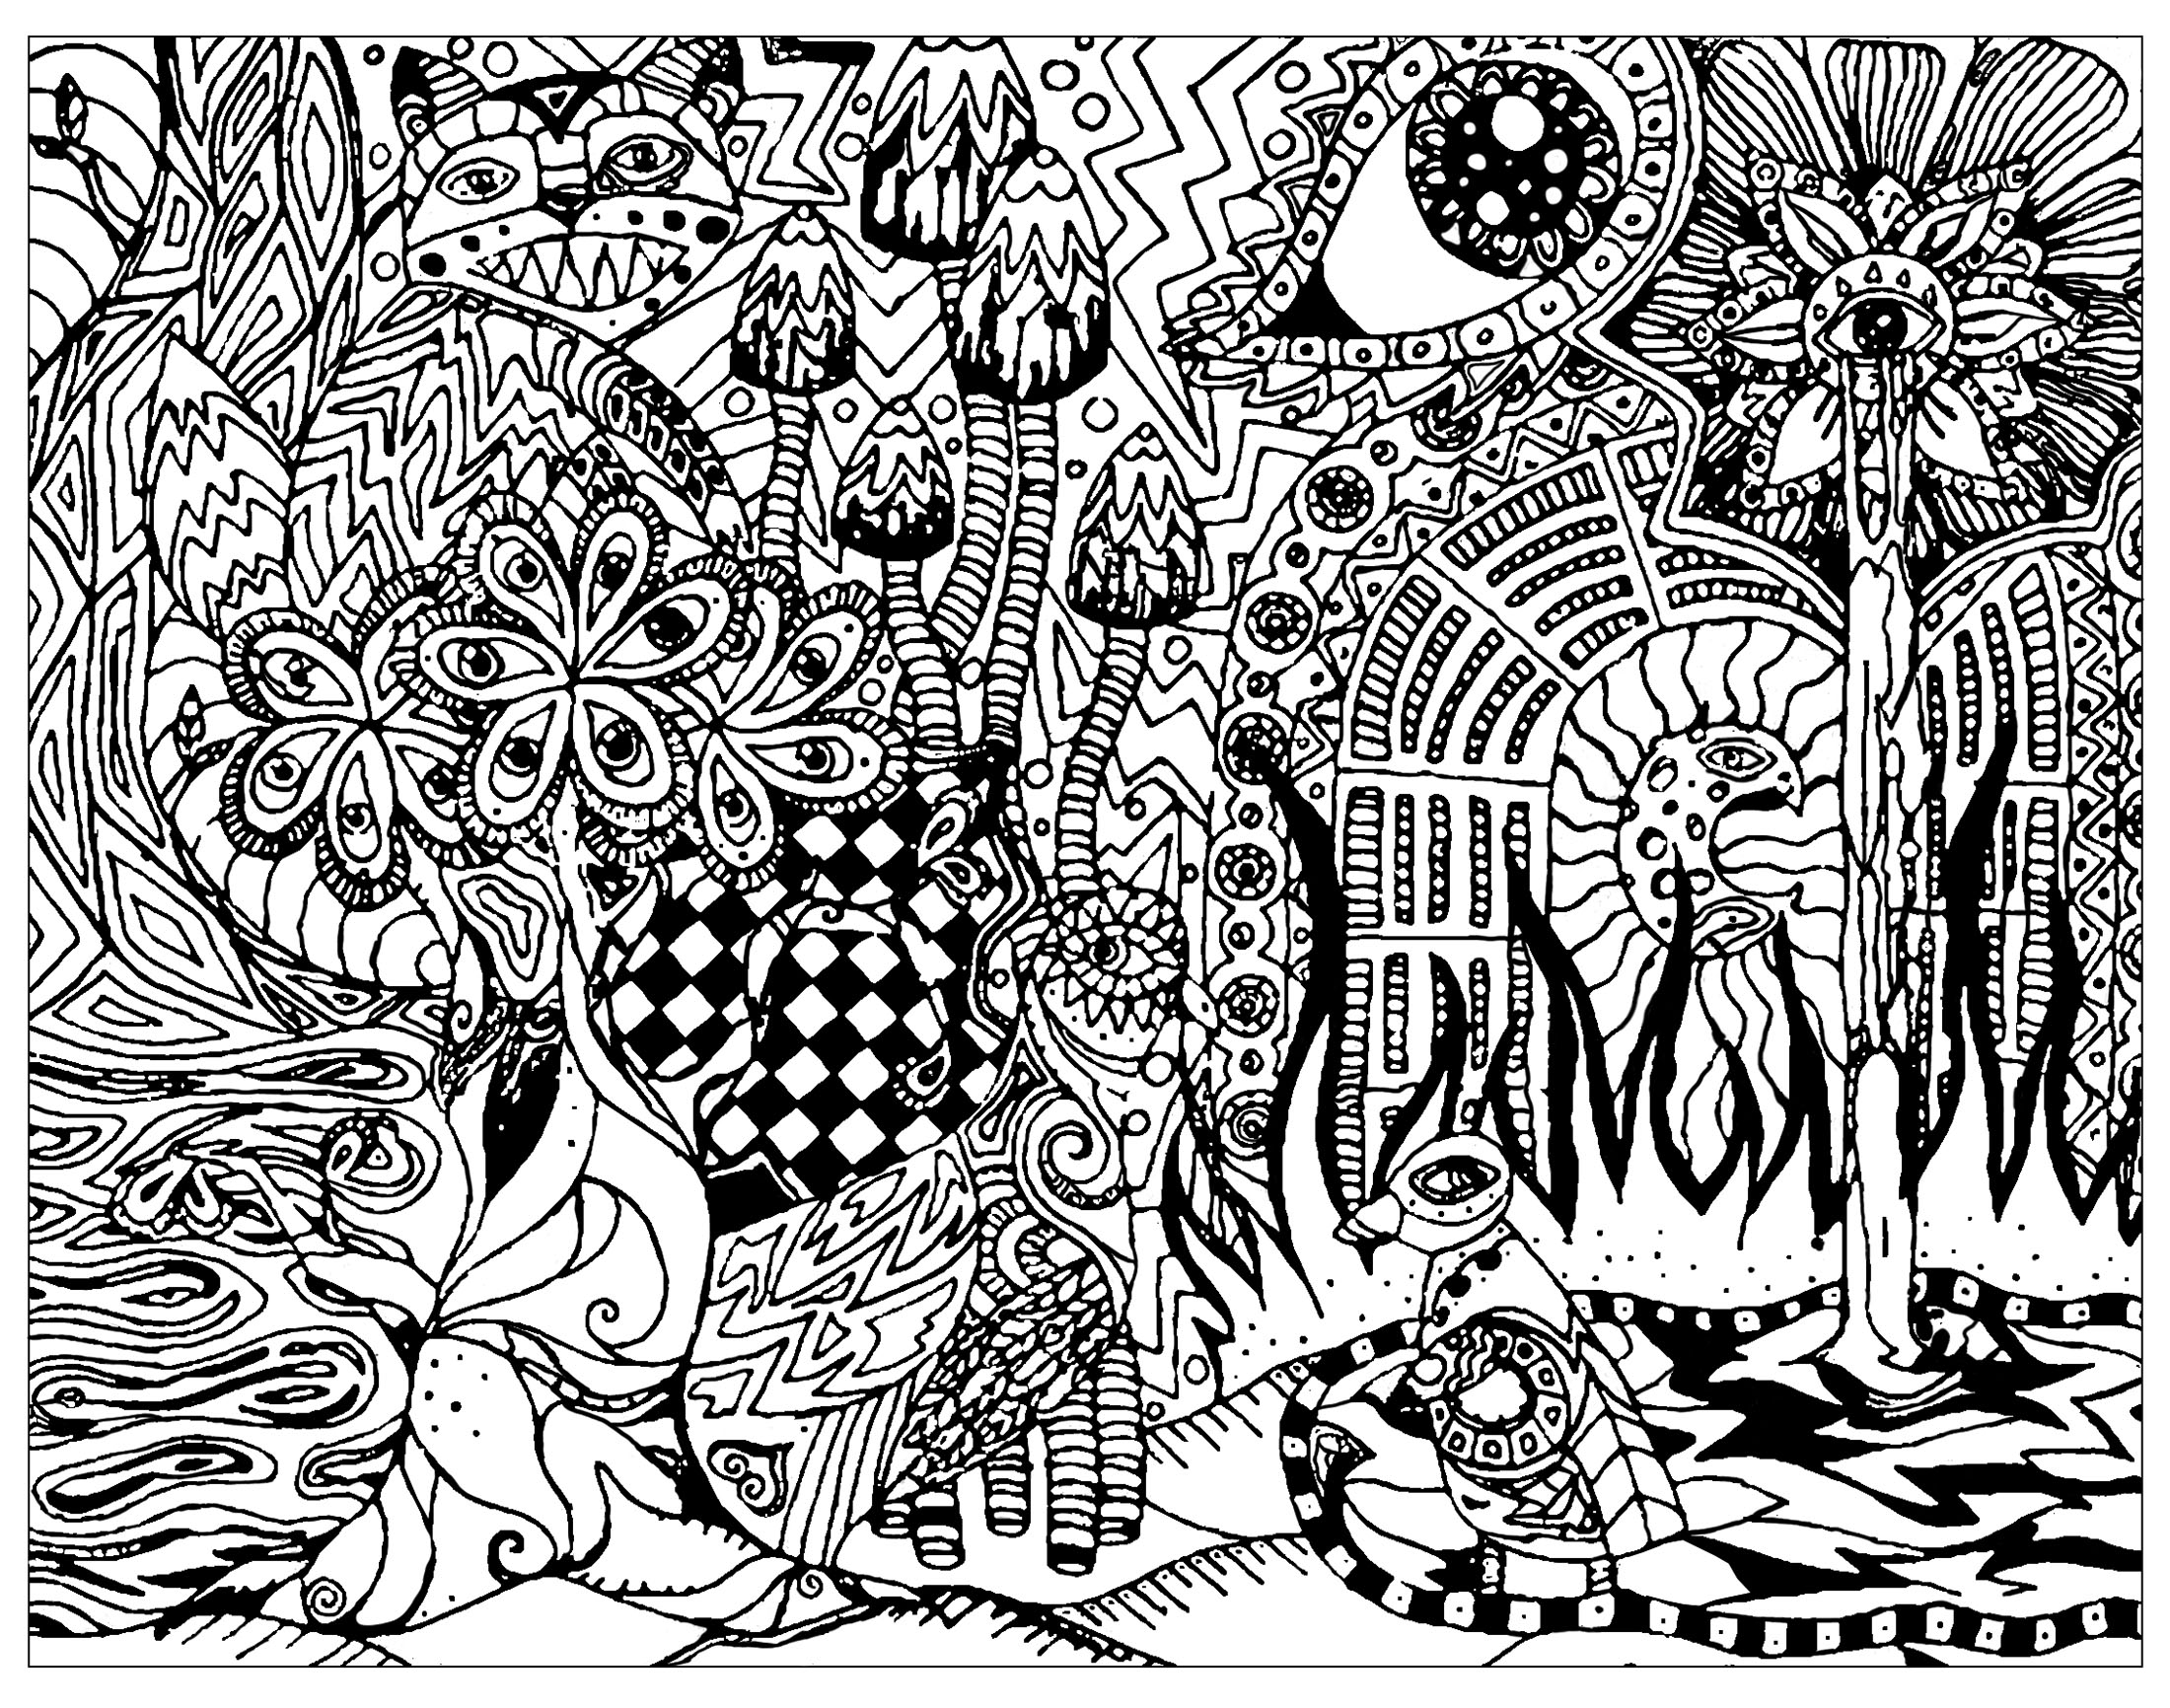 coloring pages for adults trippy 314 best trippypsychedelic coloring pages images on adults trippy for coloring pages